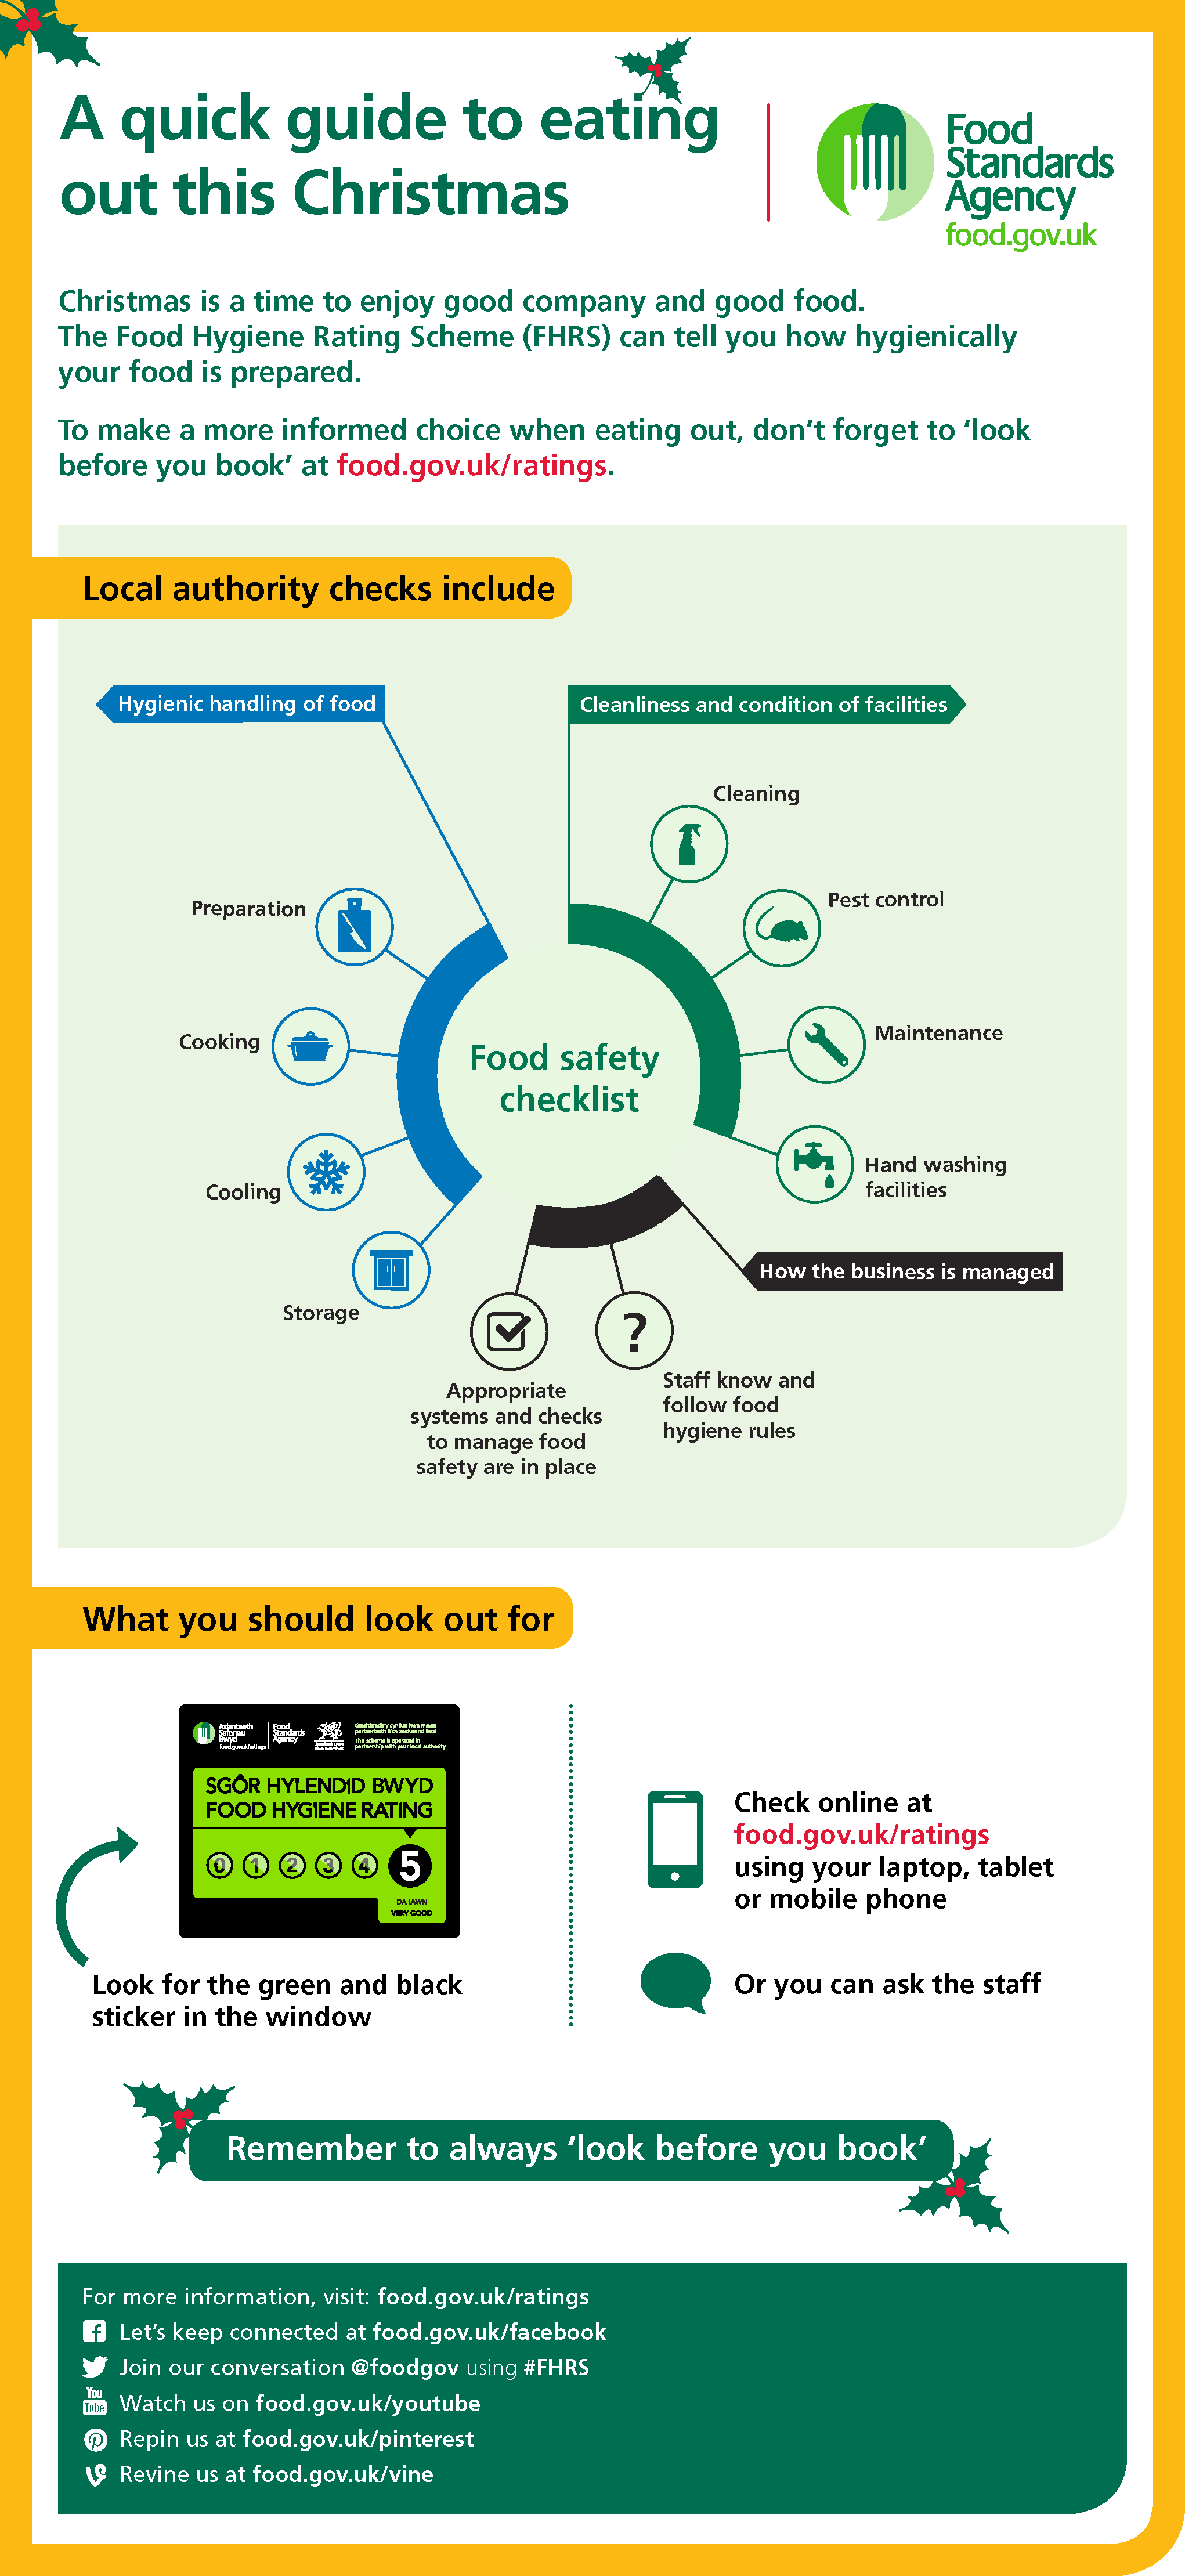 look before you book this christmas says food standards agency infographic thumbnail your quick guide to eating out